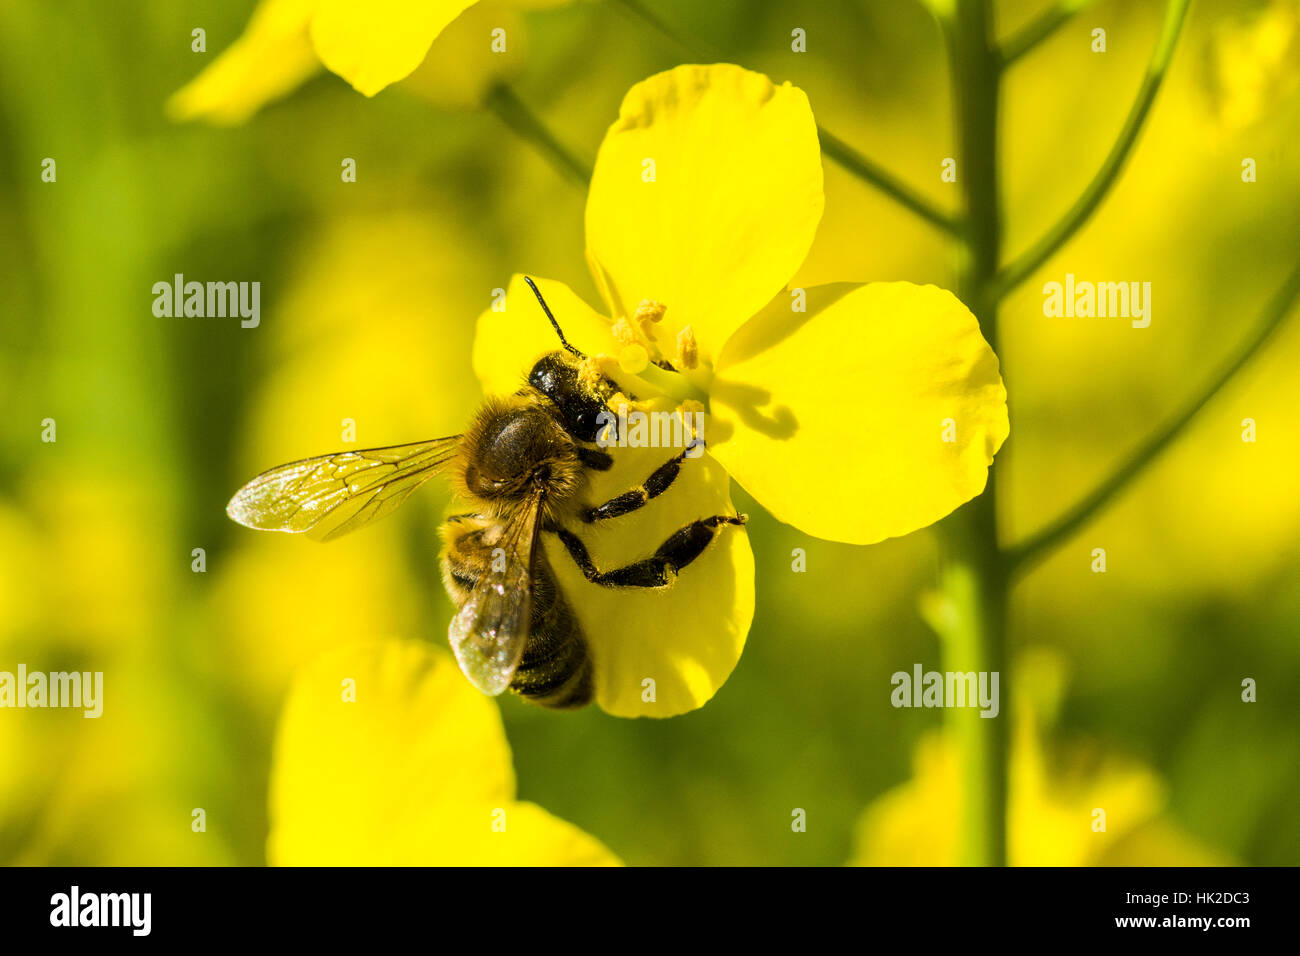 A Carniolan honey bee (Apis mellifera carnica) is collecting nectar at a yellow rapeseed blossom - Stock Image